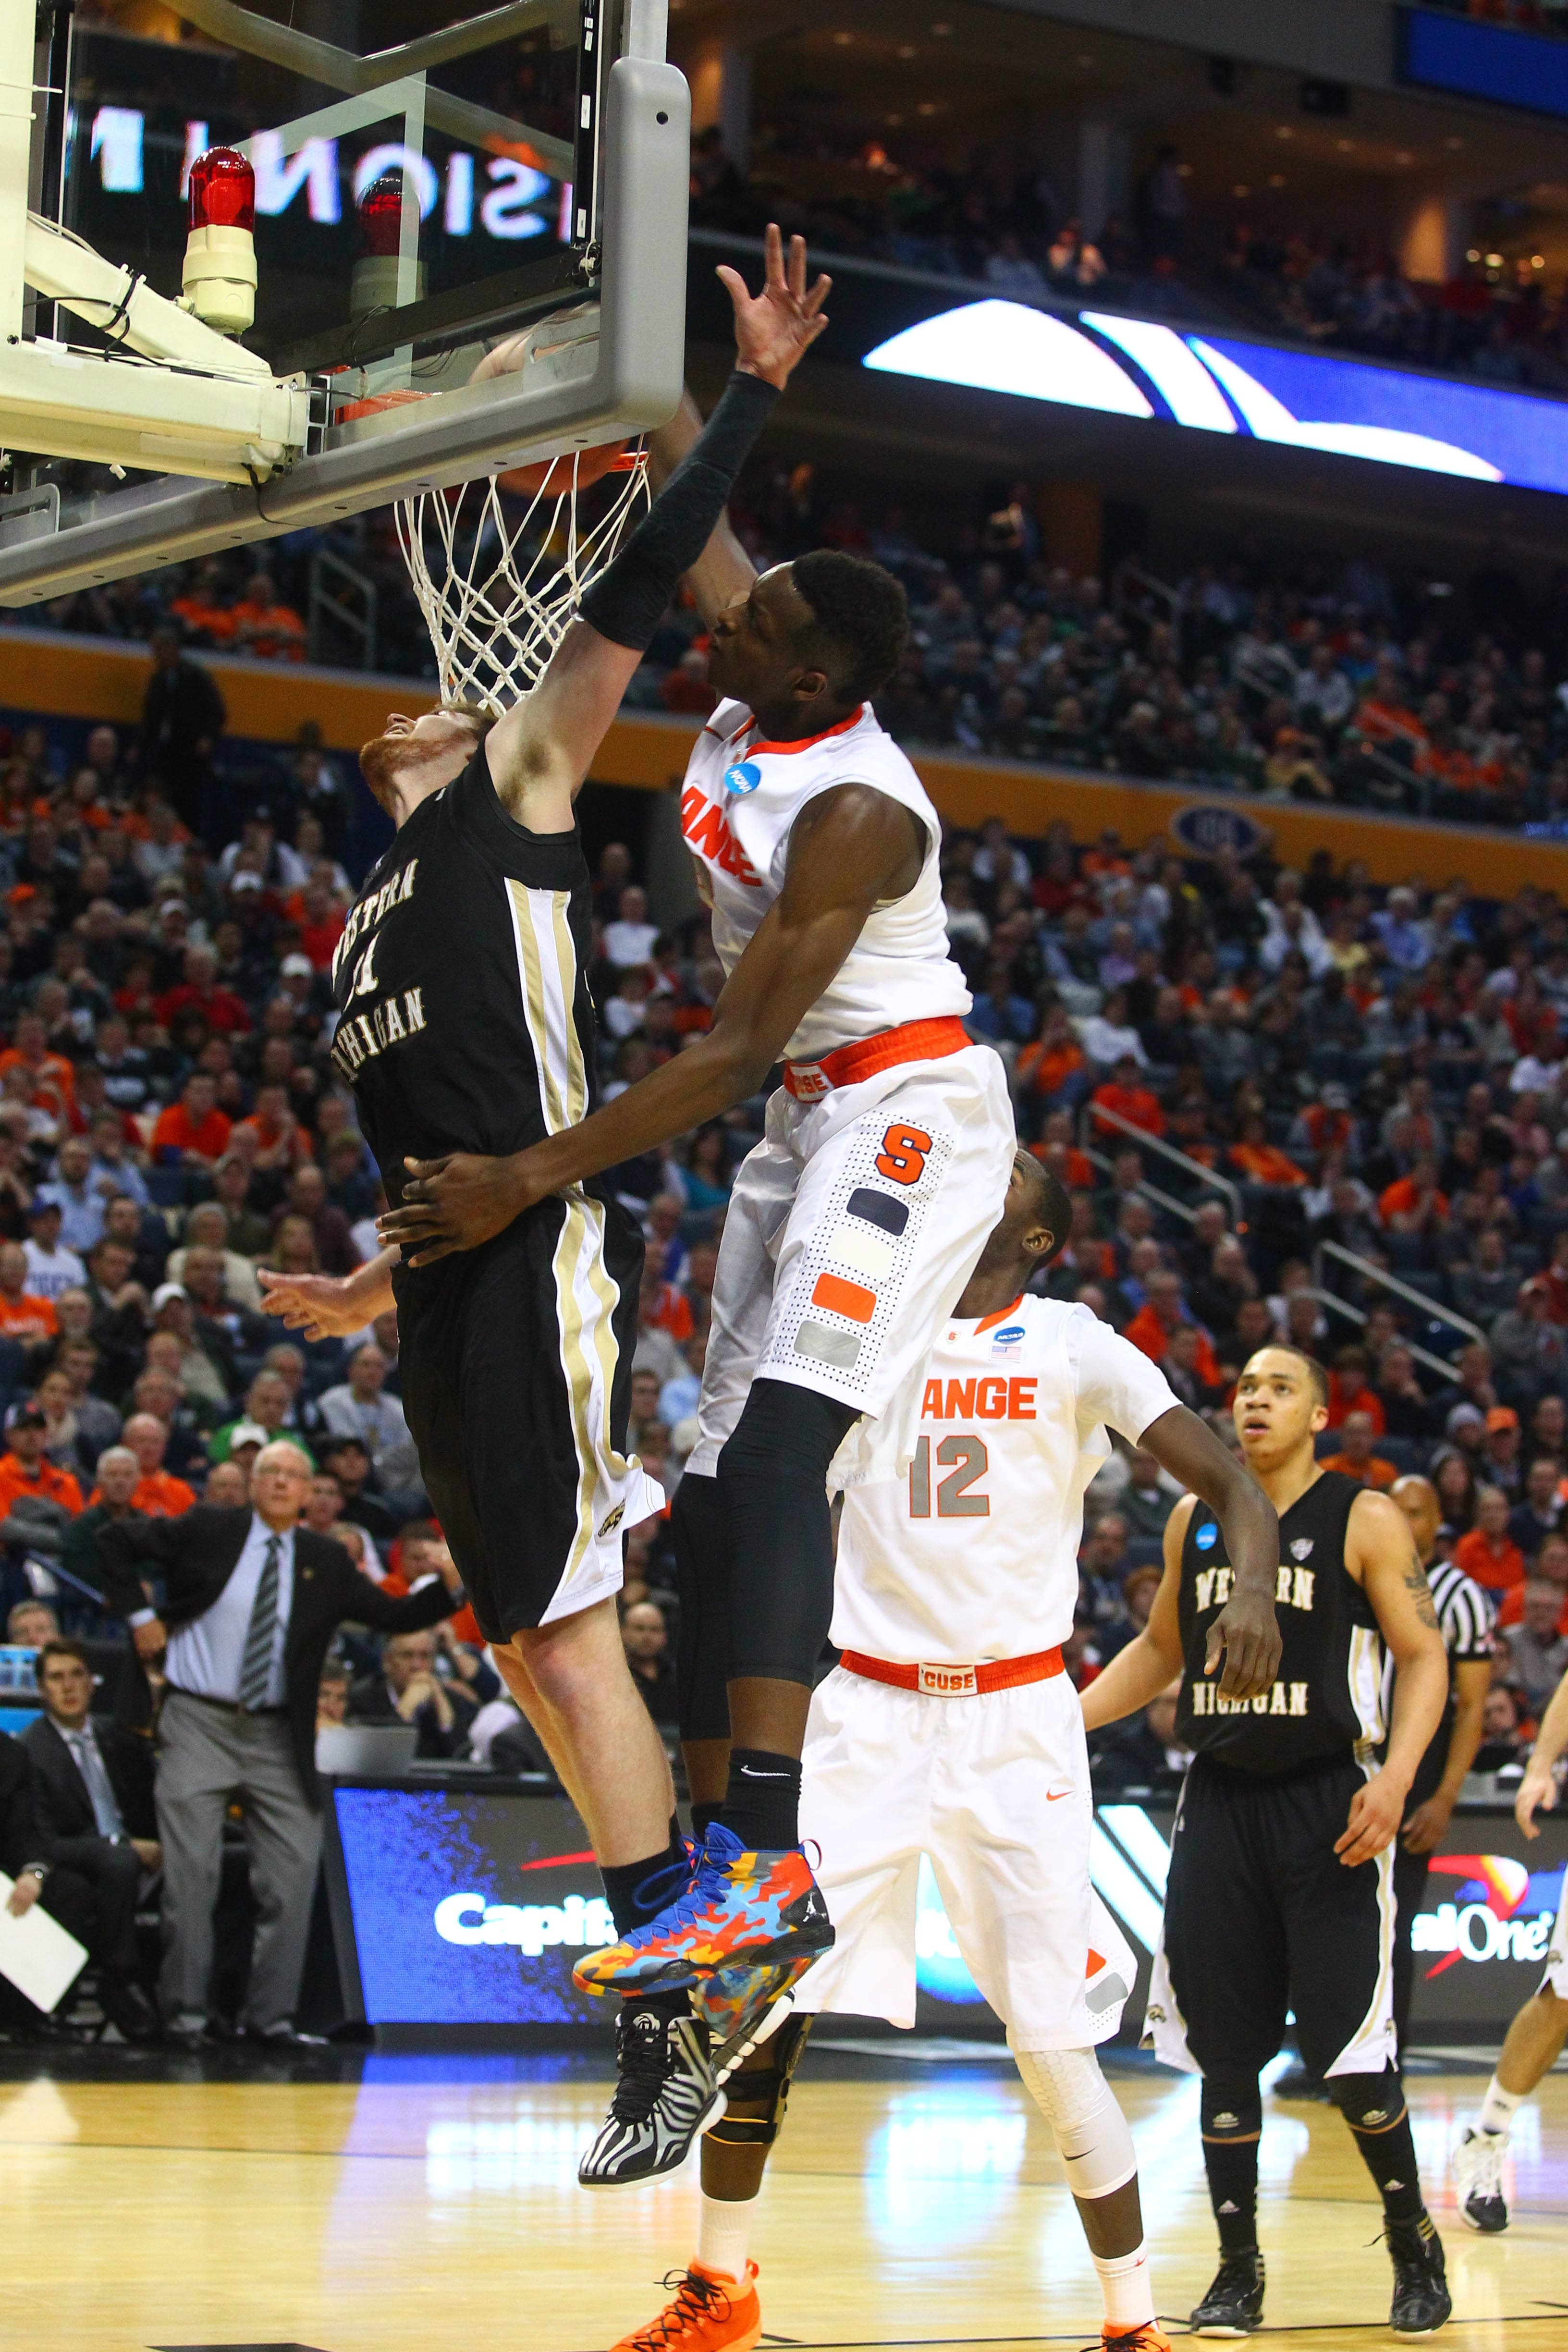 Syracuse sophomore forward Jerami Grant completes one of his four dunks against Western Michigan.